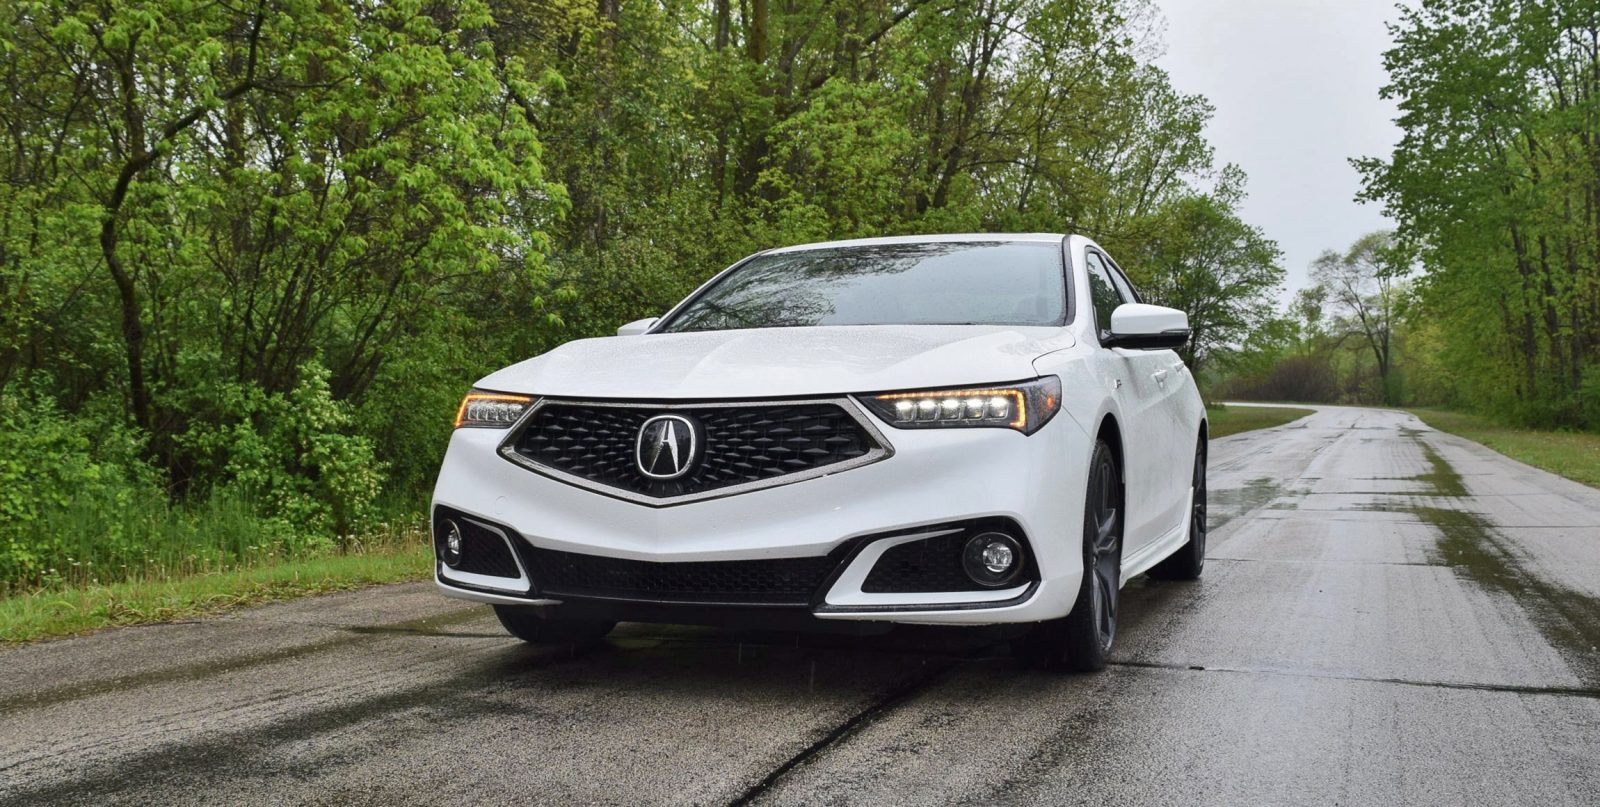 2018 Acura TLX A-Spec 6